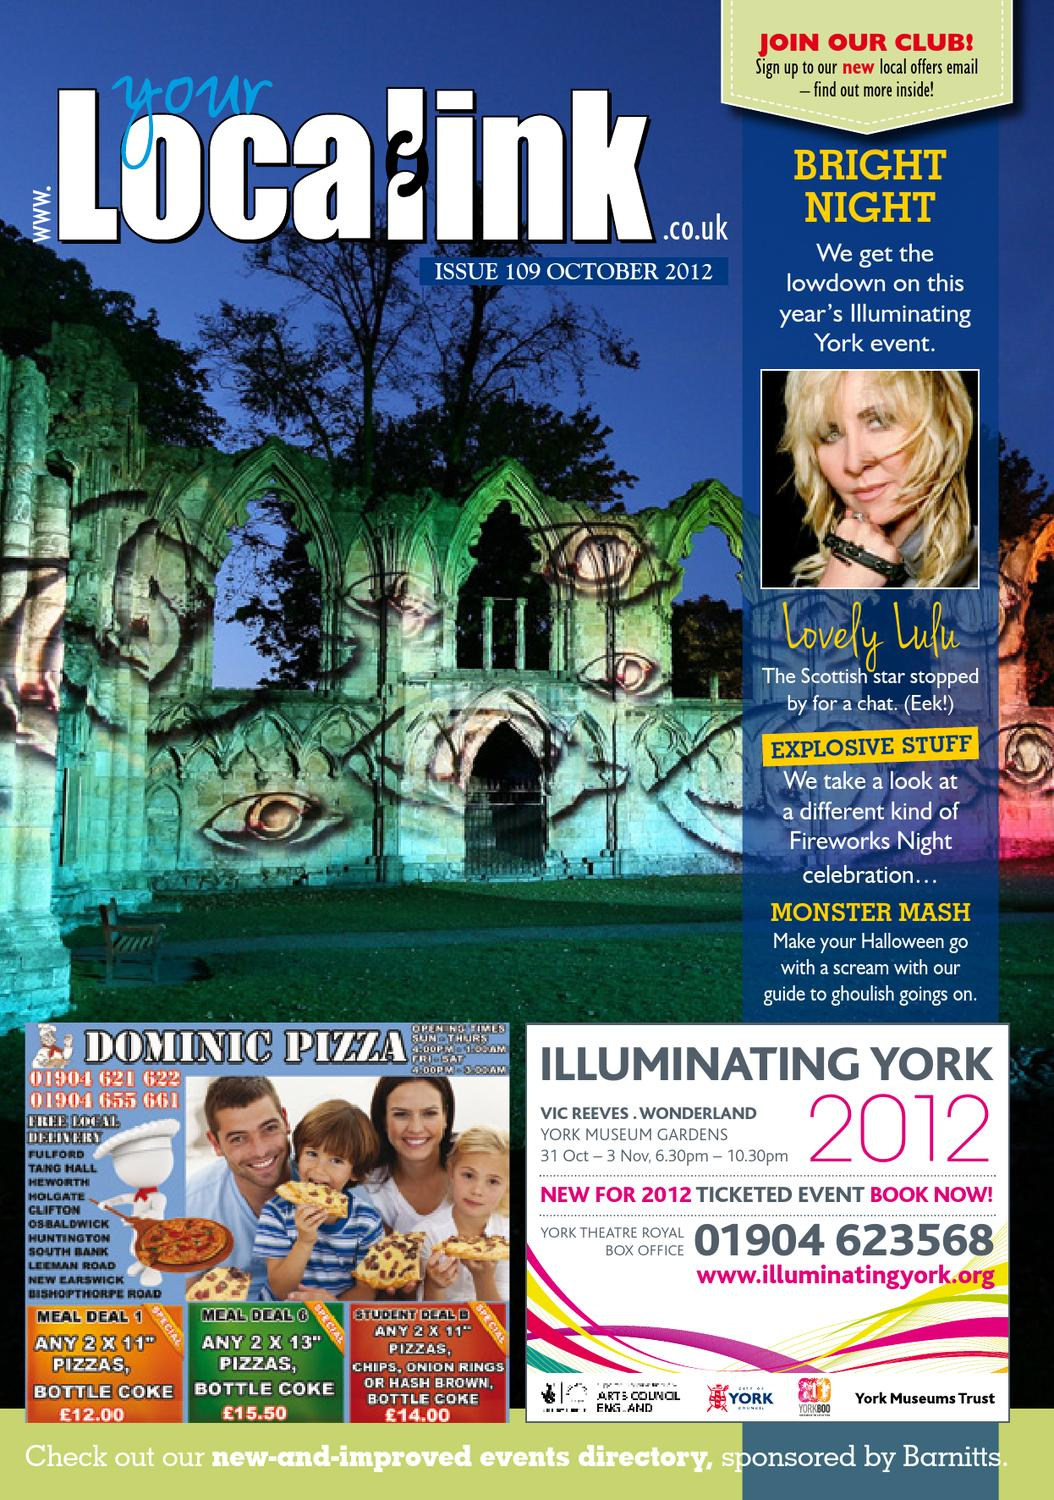 Your Local Link Magazine October 2012 By Your Local Link Ltd Issuu